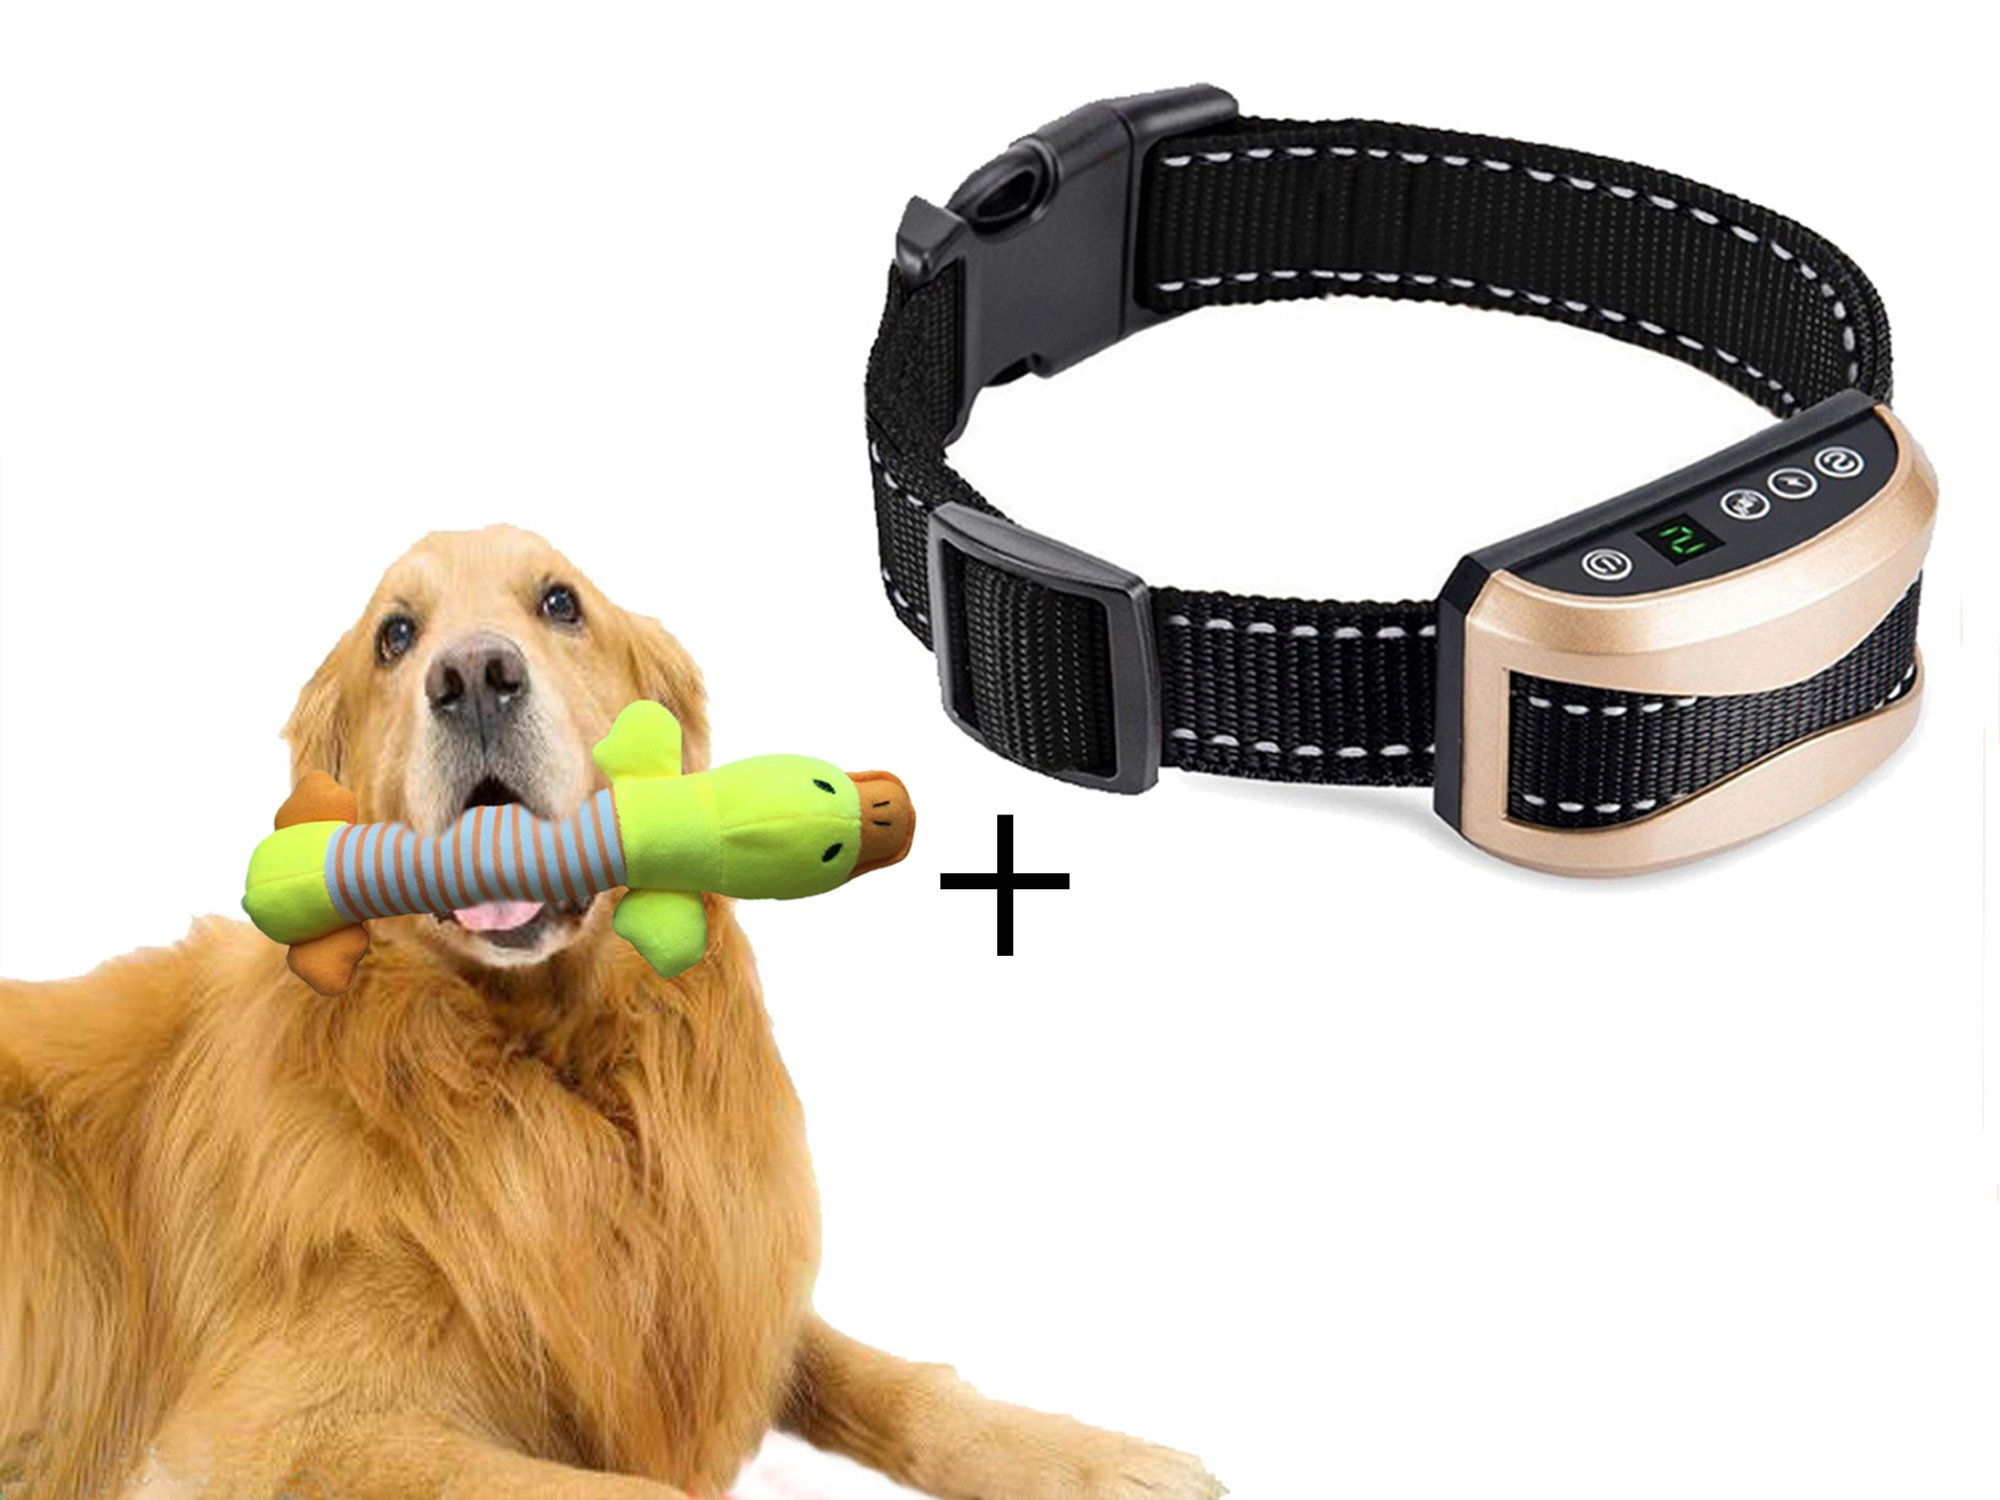 No Bark Collar for Small Medium Large Dog,Dog Training Collar Rechargeable and Rainproof,Bark Collar with Beep,Vibration and Shock Electronic Collar 7 Levels Sensitivity with Duck Dog Squeak Toys